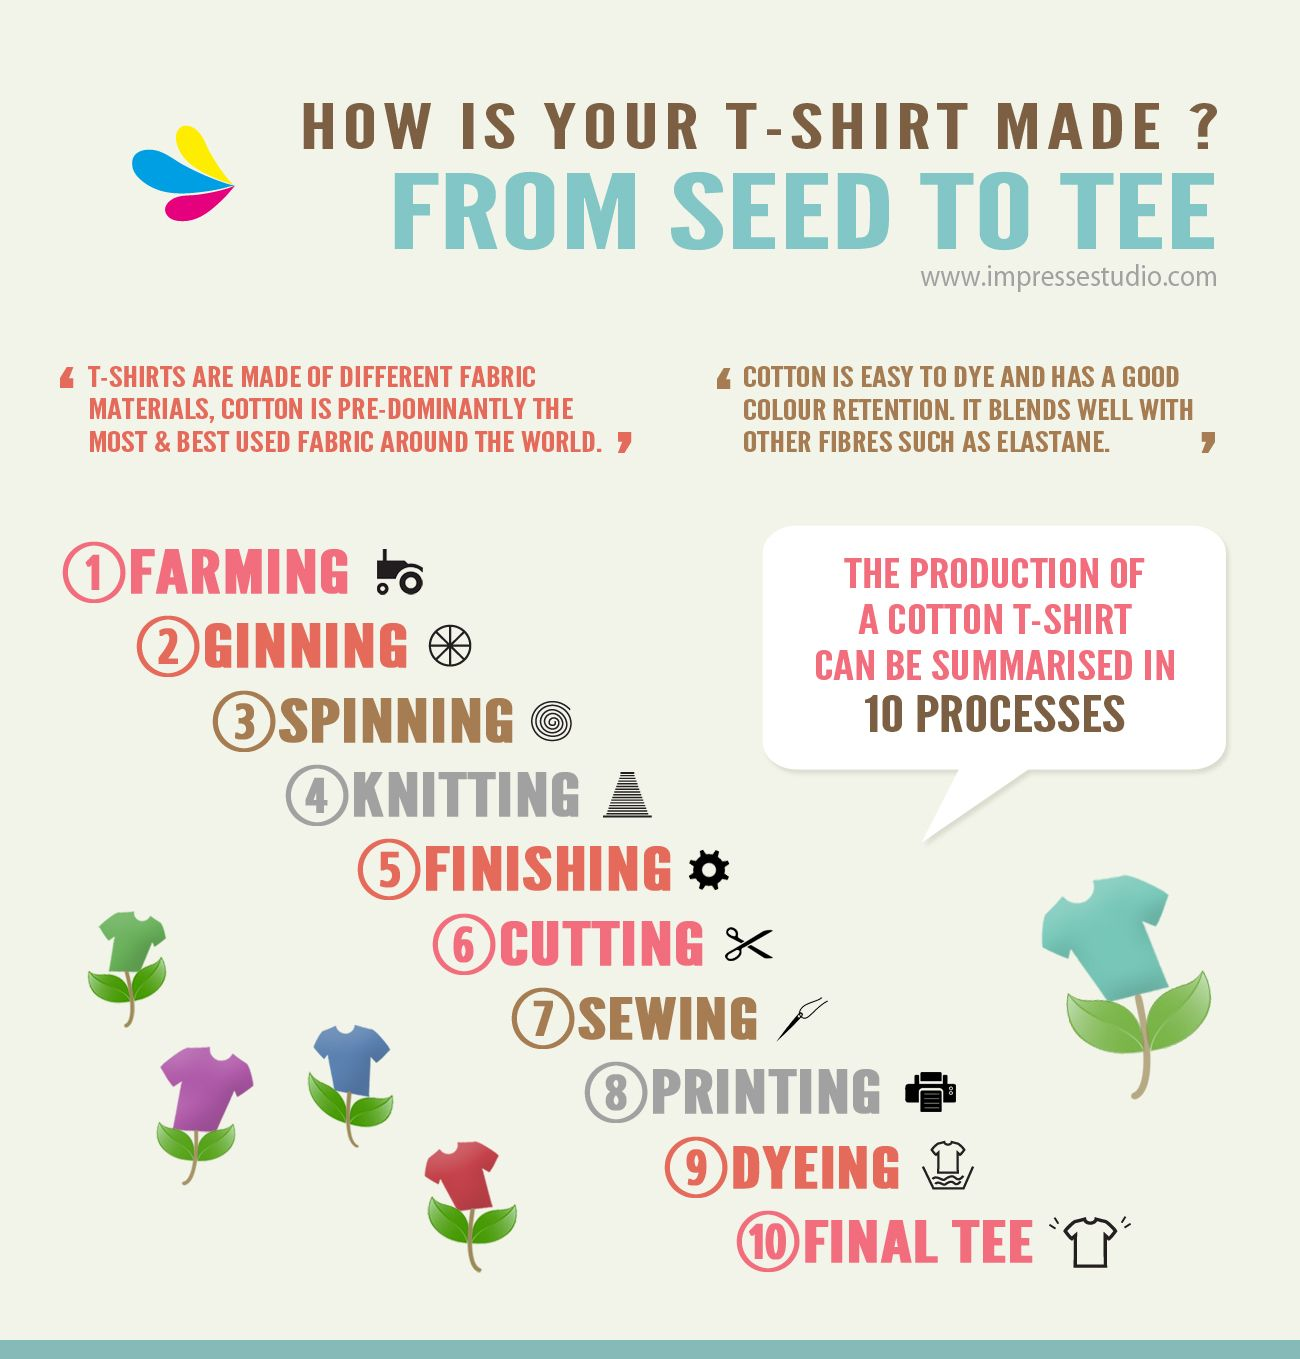 10 steps of making a T-Shirt  The Production of a cotton T